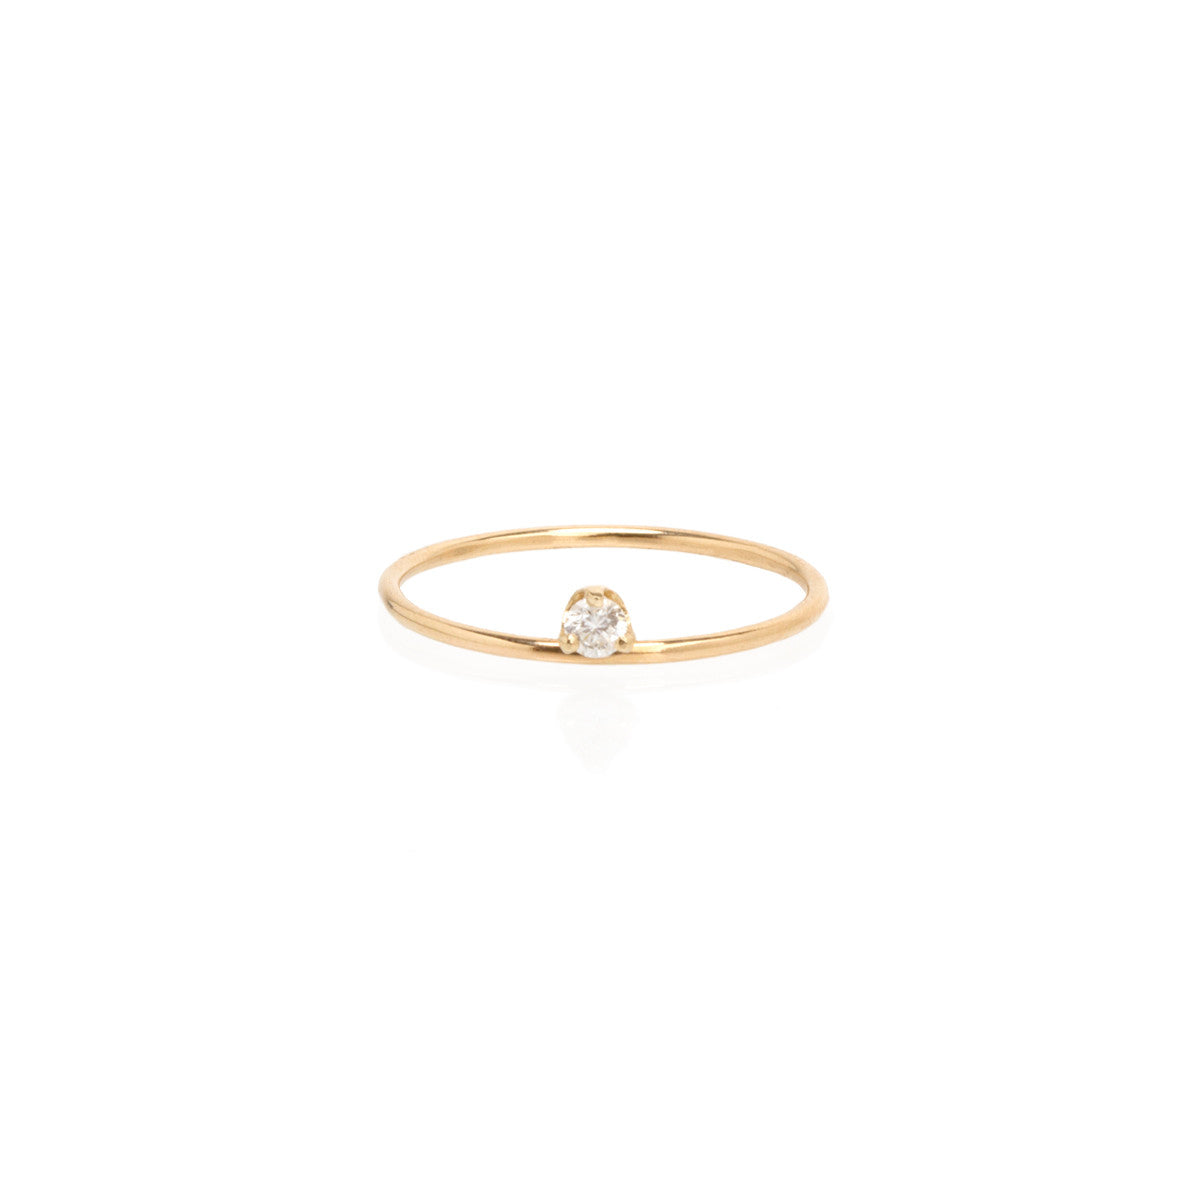 Zoë Chicco 14kt Yellow Gold Floating Diamond Prong Ring